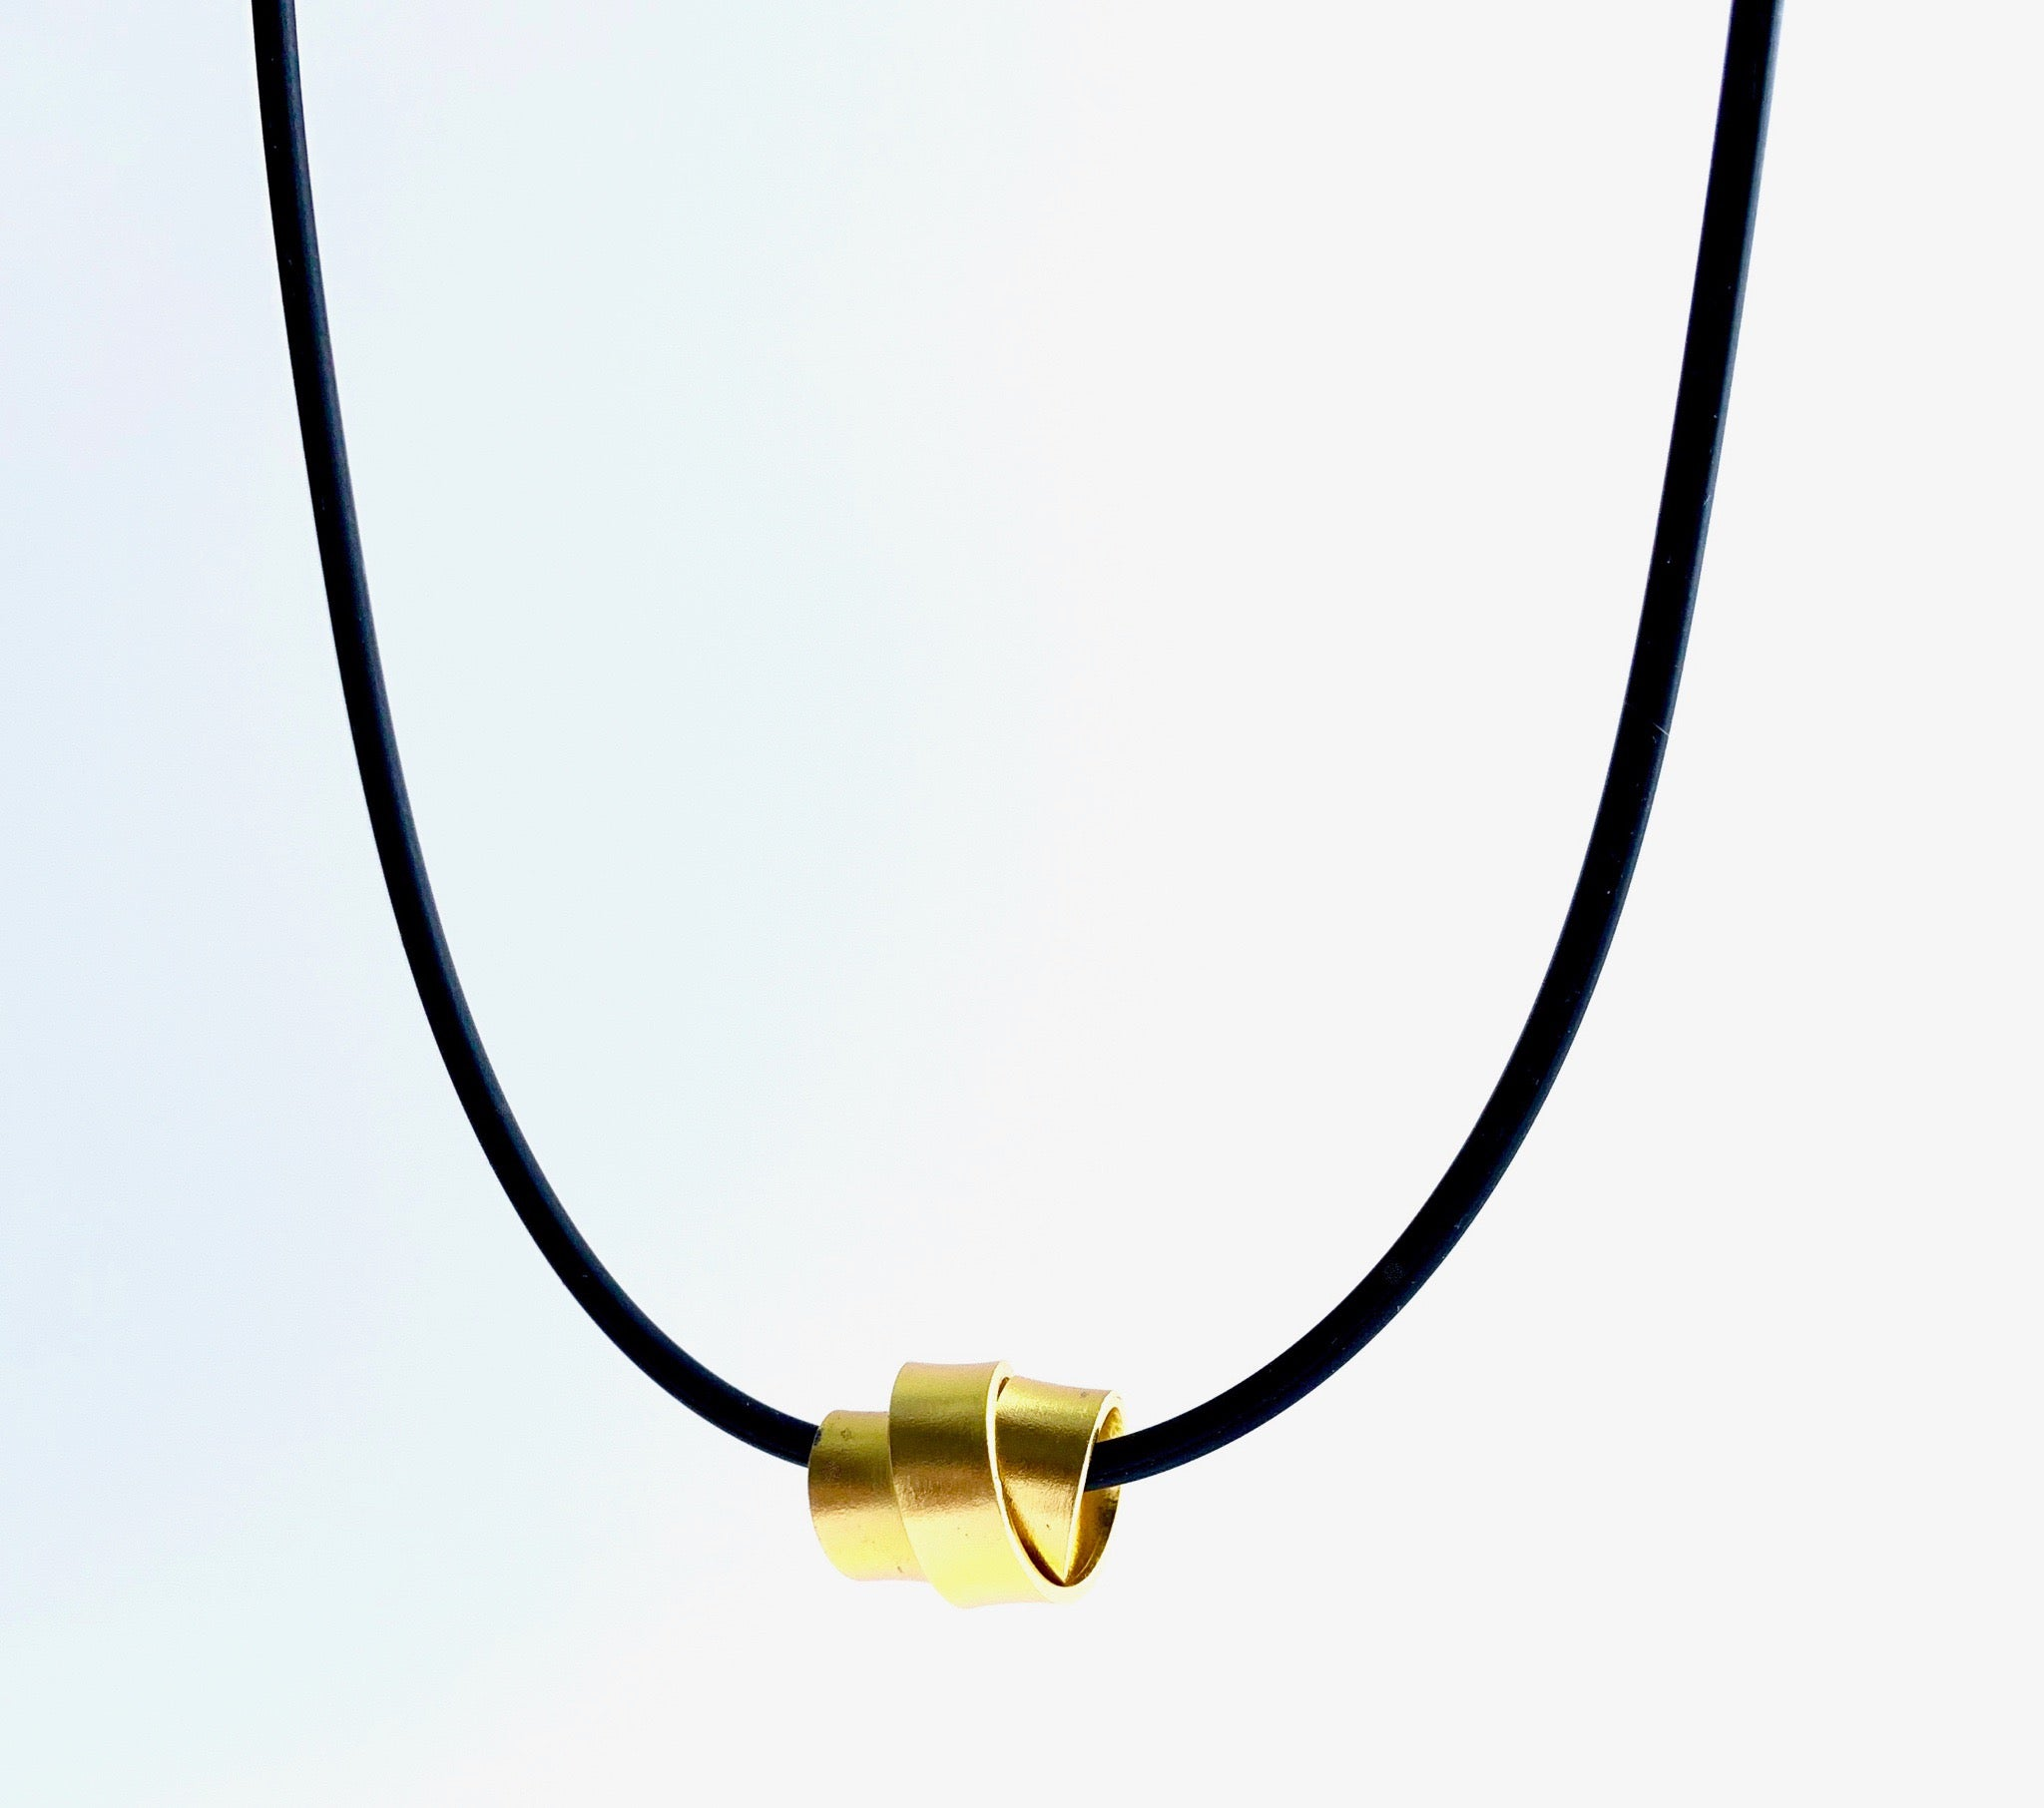 This Rubber Loopt necklace is in flat gold. Made of aluminum wire and hangs on a rubber necklace with an interlocking closure. This piece comes in many variations.